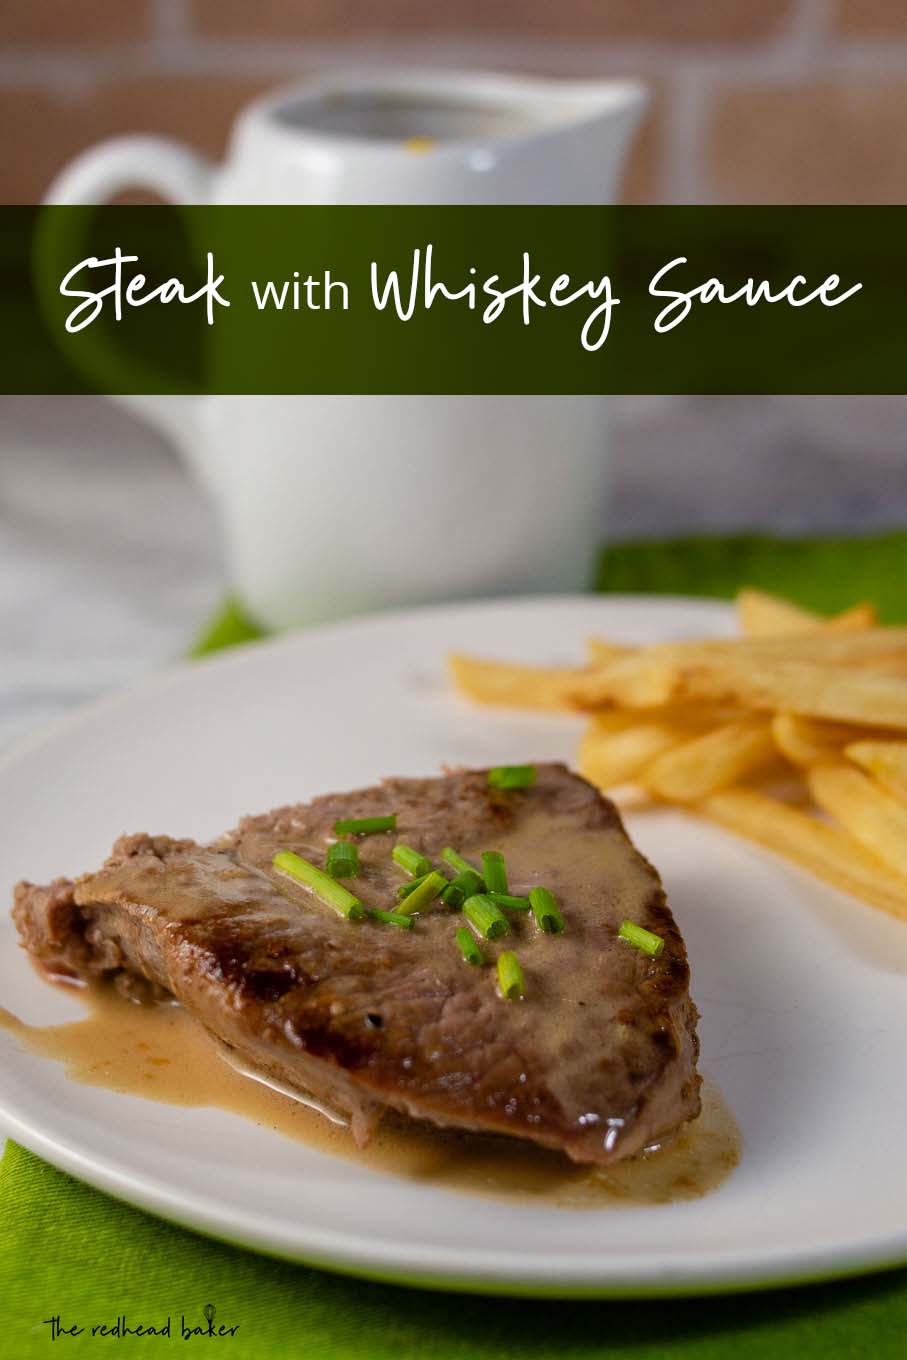 A plate of steak with whiskey sauce and a side of French fries with a container of whiskey sauce in the background